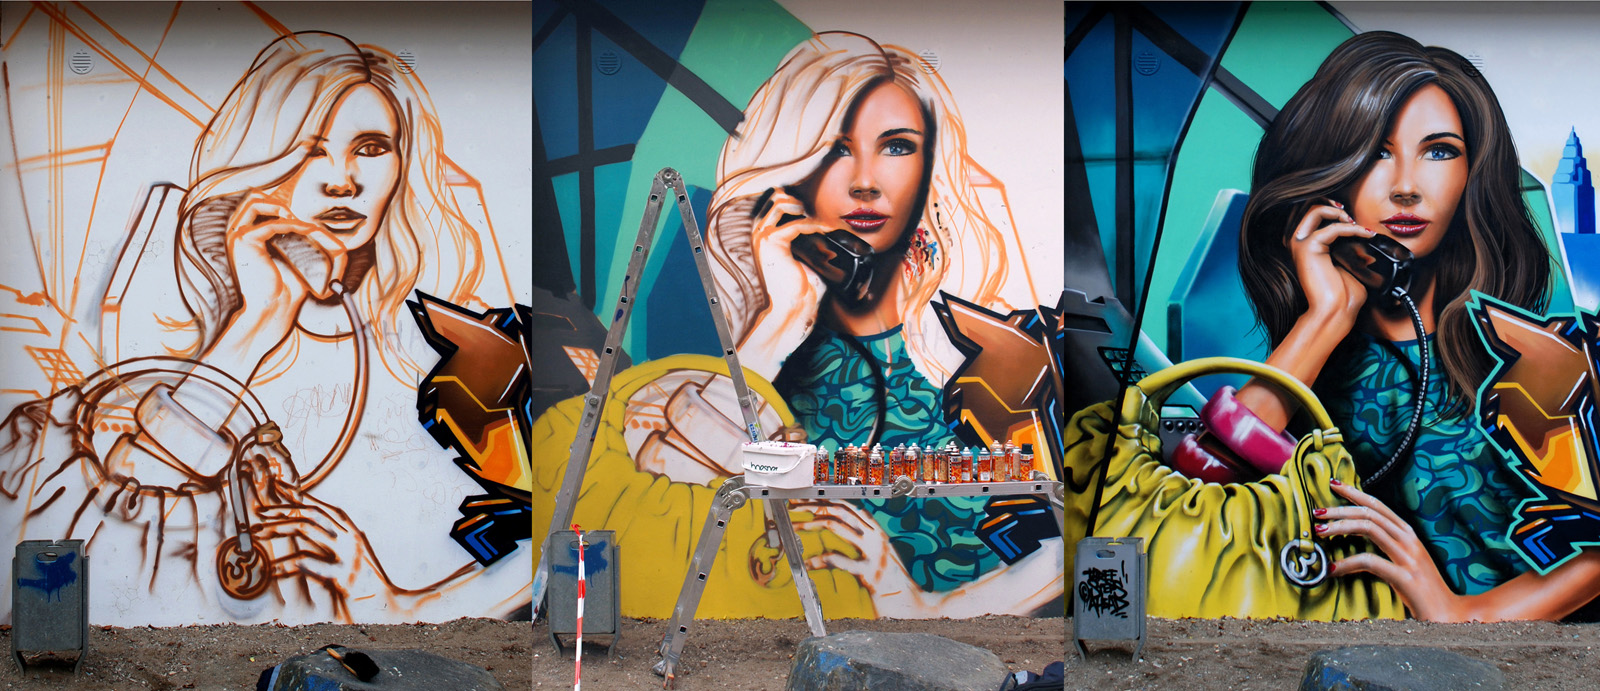 The image shows a collage of New Yorker cityscapes, a yellow taxi cab, a girl giving a phone call and classical graffiti styles from SiveOne and Doc Nova. Painted during September 2009 in Wetzlar.